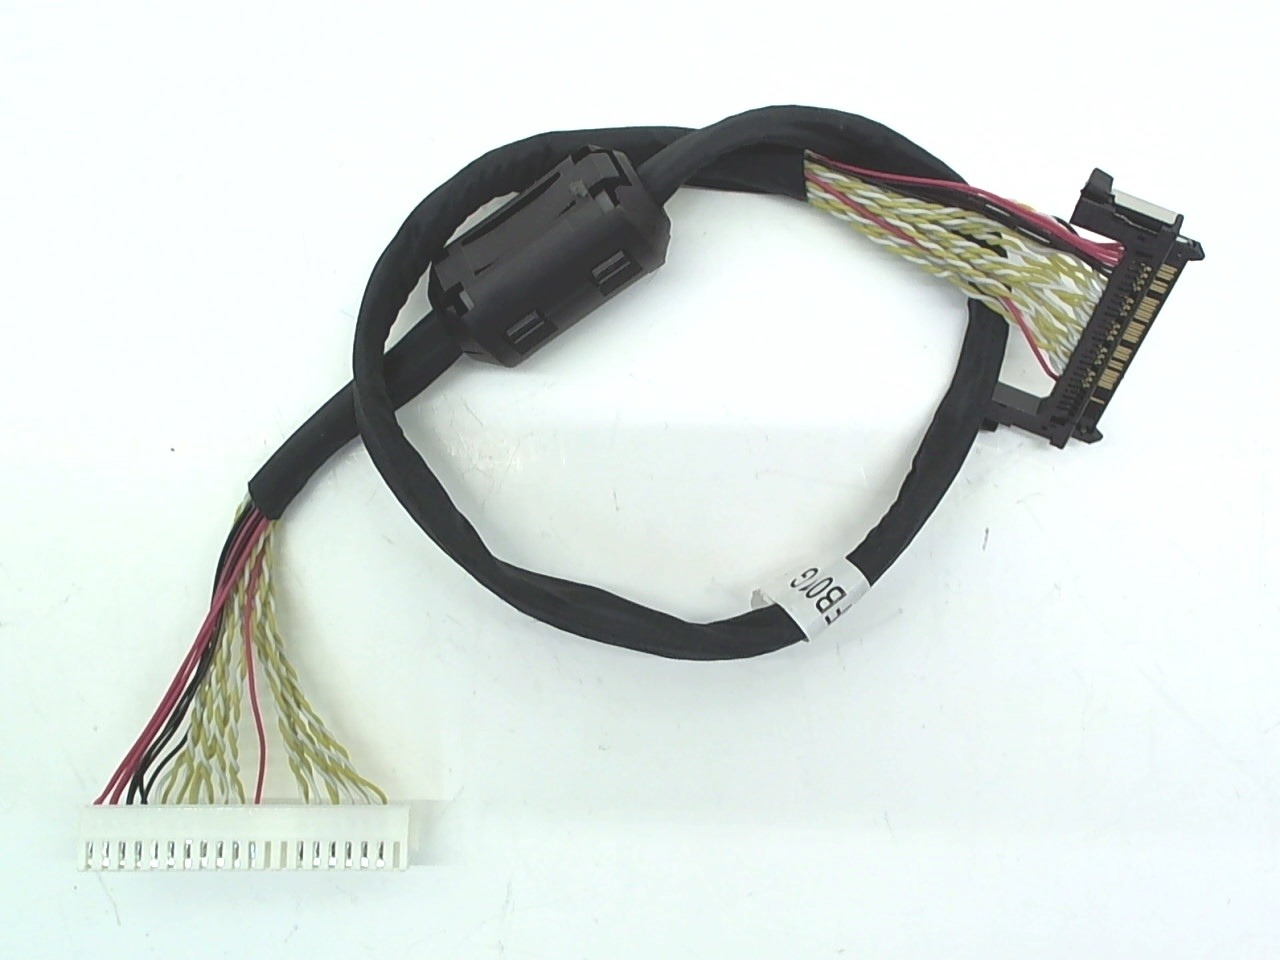 TCL TV Model LE48FHDF3310 LVDS Cable Part Number 46-60FAXX-BFB01G